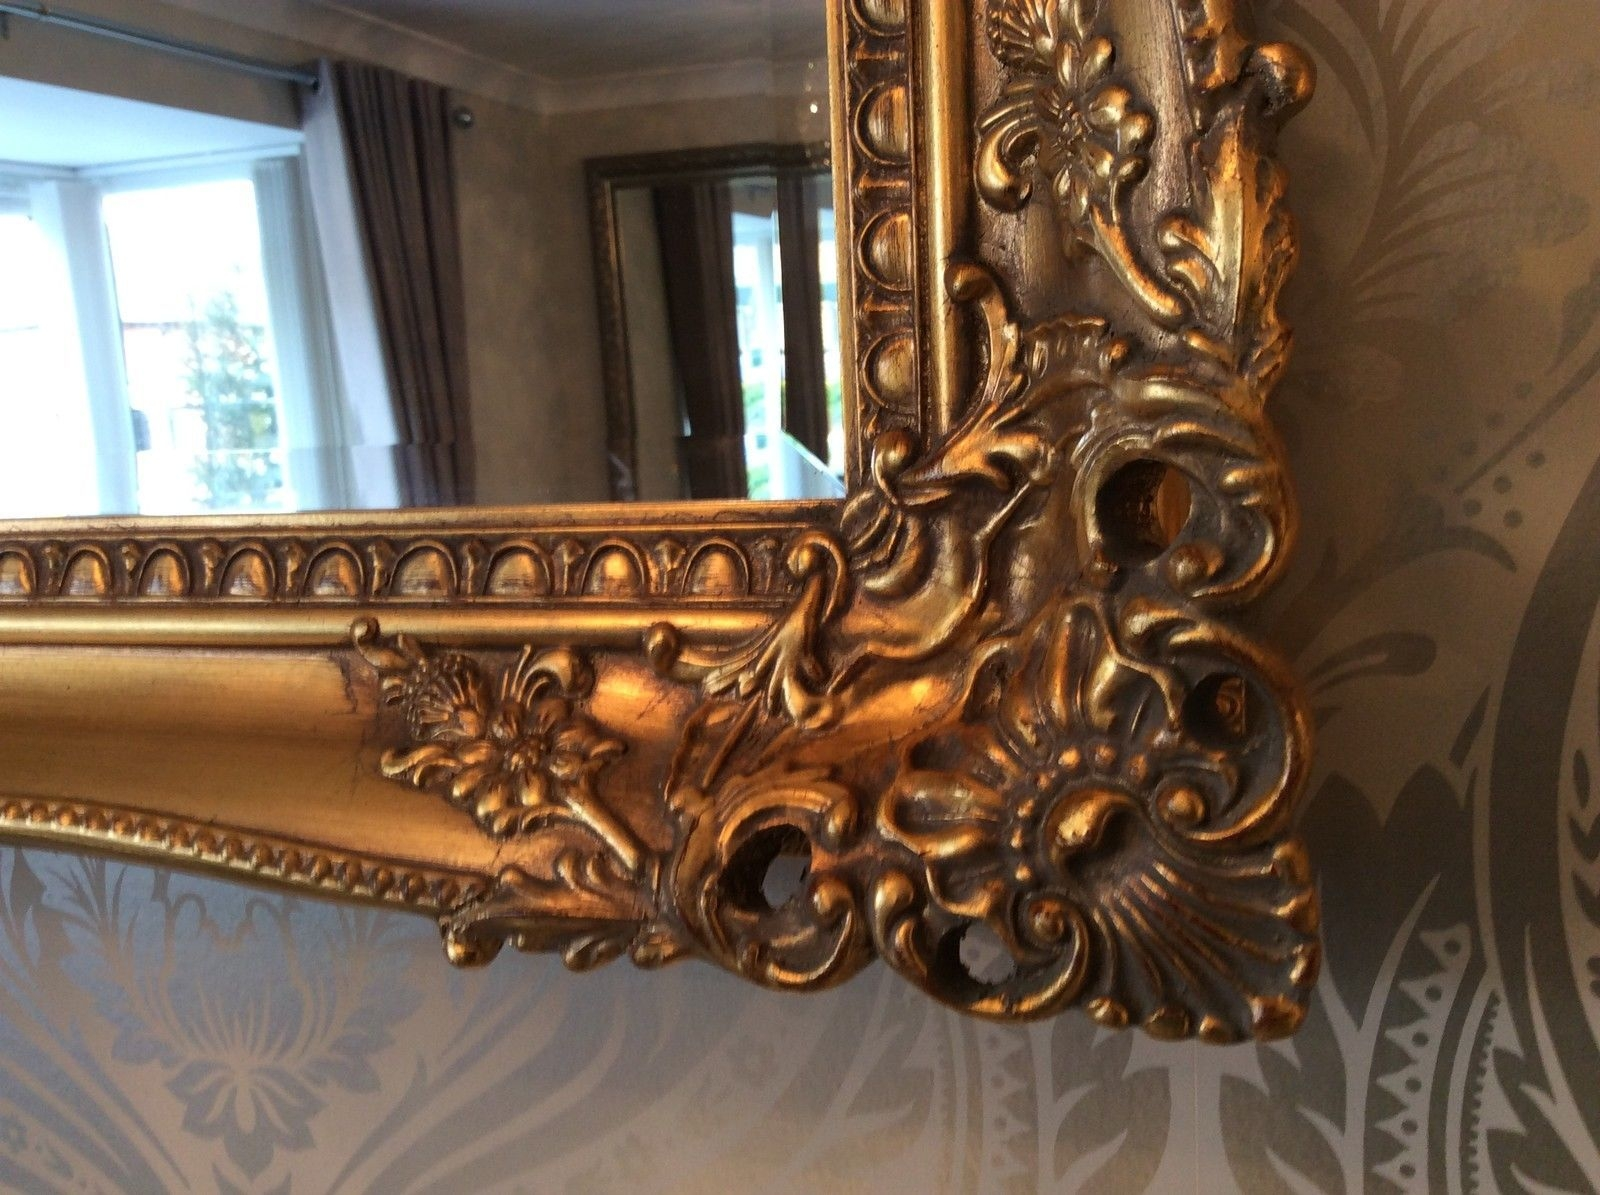 Large Antique Gold Shab Chic Ornate Decorative Wall Mirror Free Inside Large Antique Gold Mirror (Image 7 of 15)